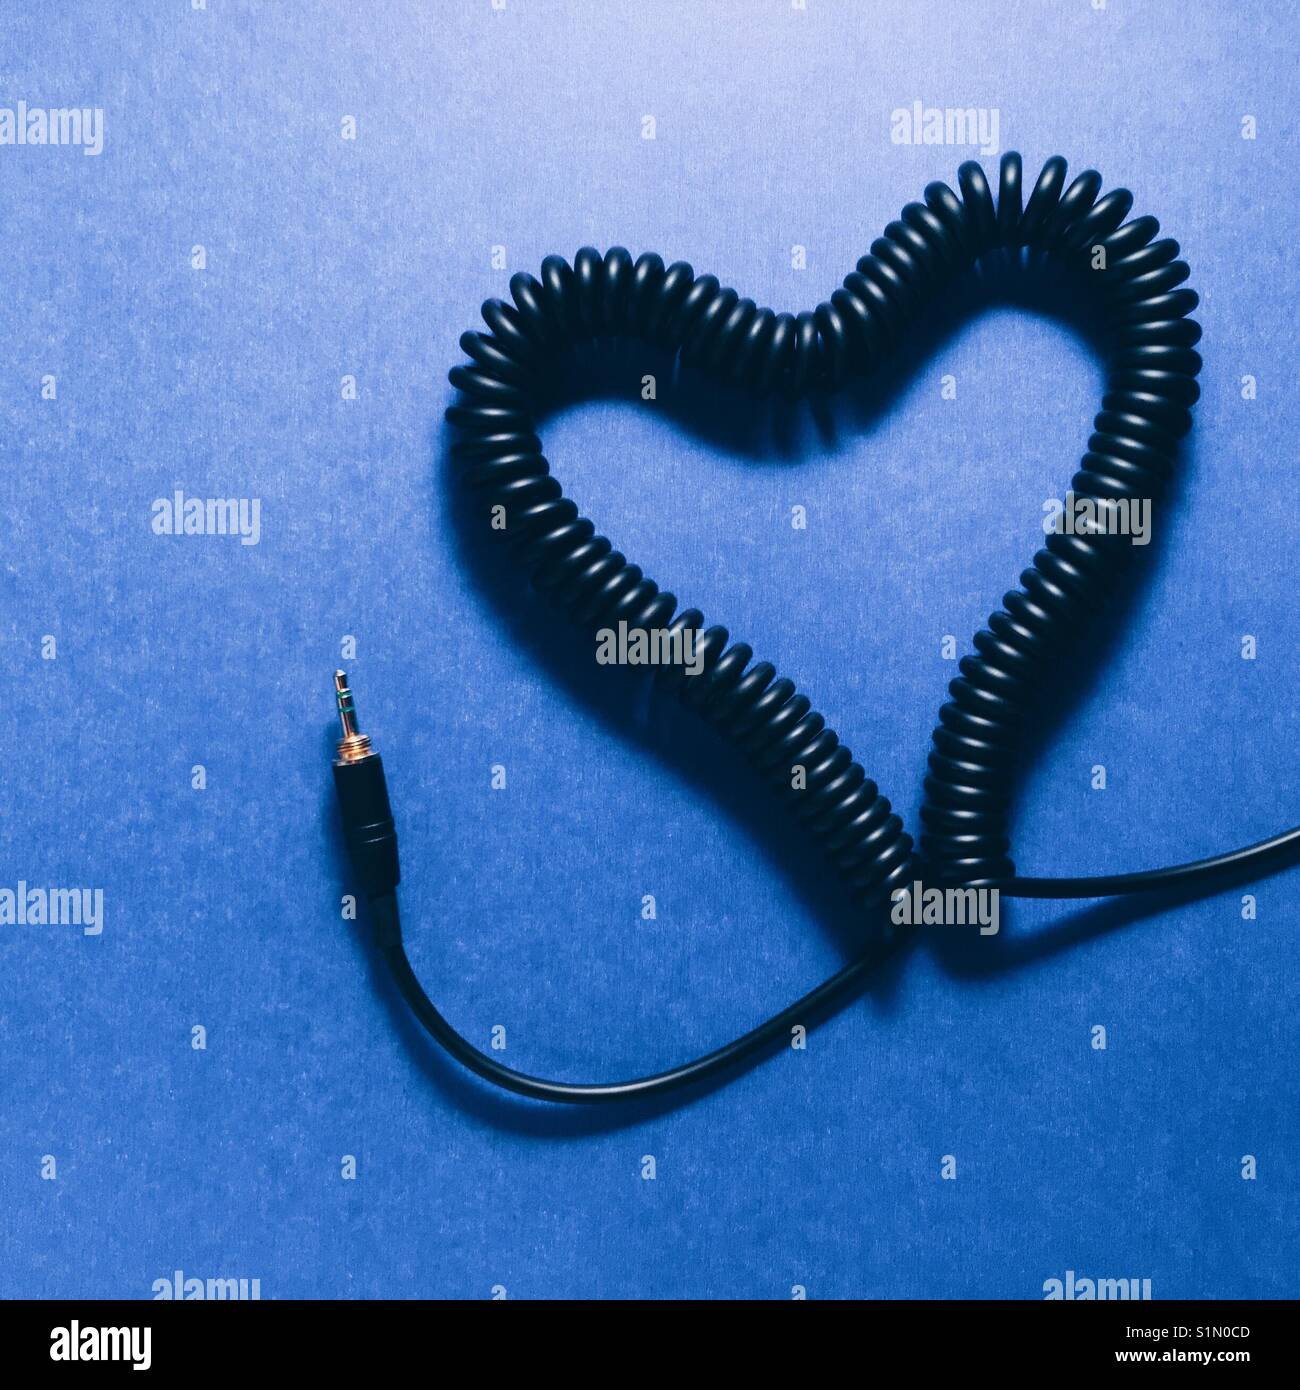 A coiled headphone cable made into a heart shape on a blue background Stock Photo